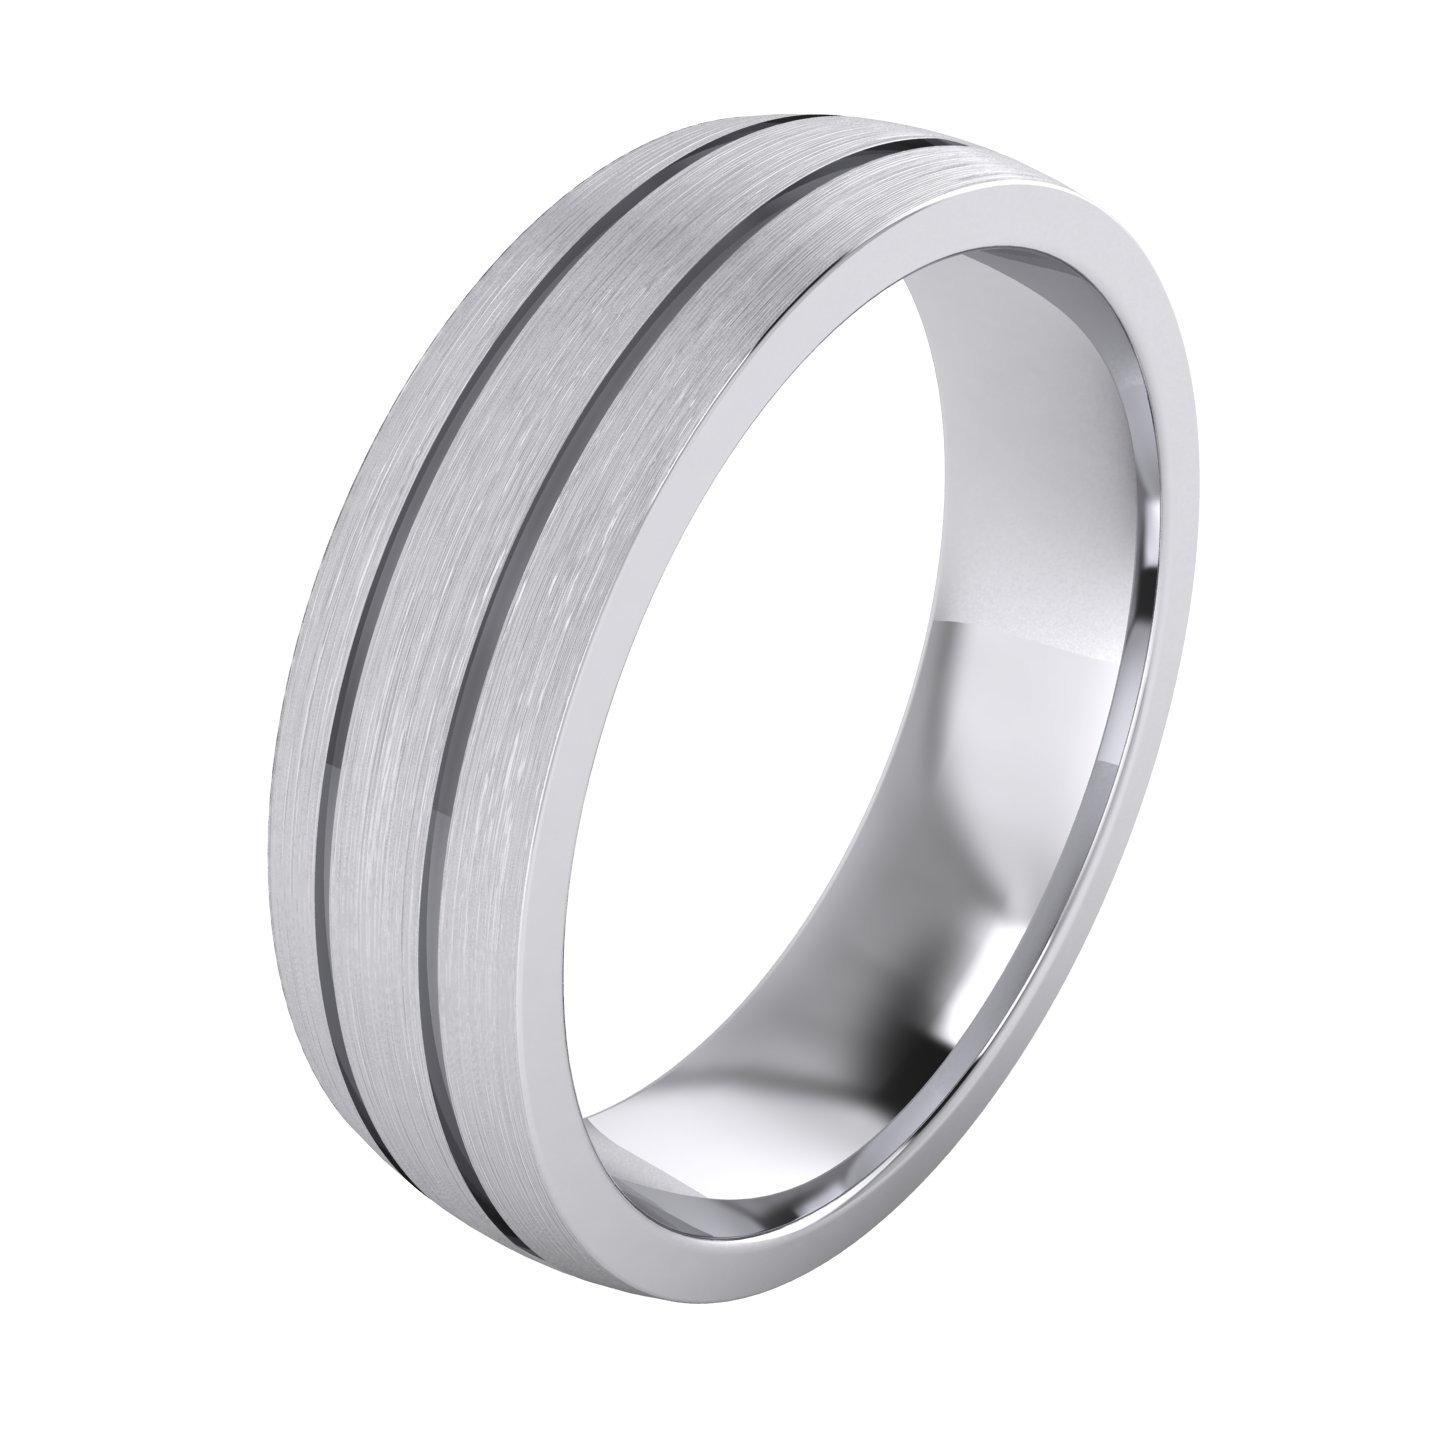 Heavy Solid Sterling Silver 6mm Unisex Wedding Band Comfort Fit Domed Ring Two Grooves Brushed Surface (7.5)